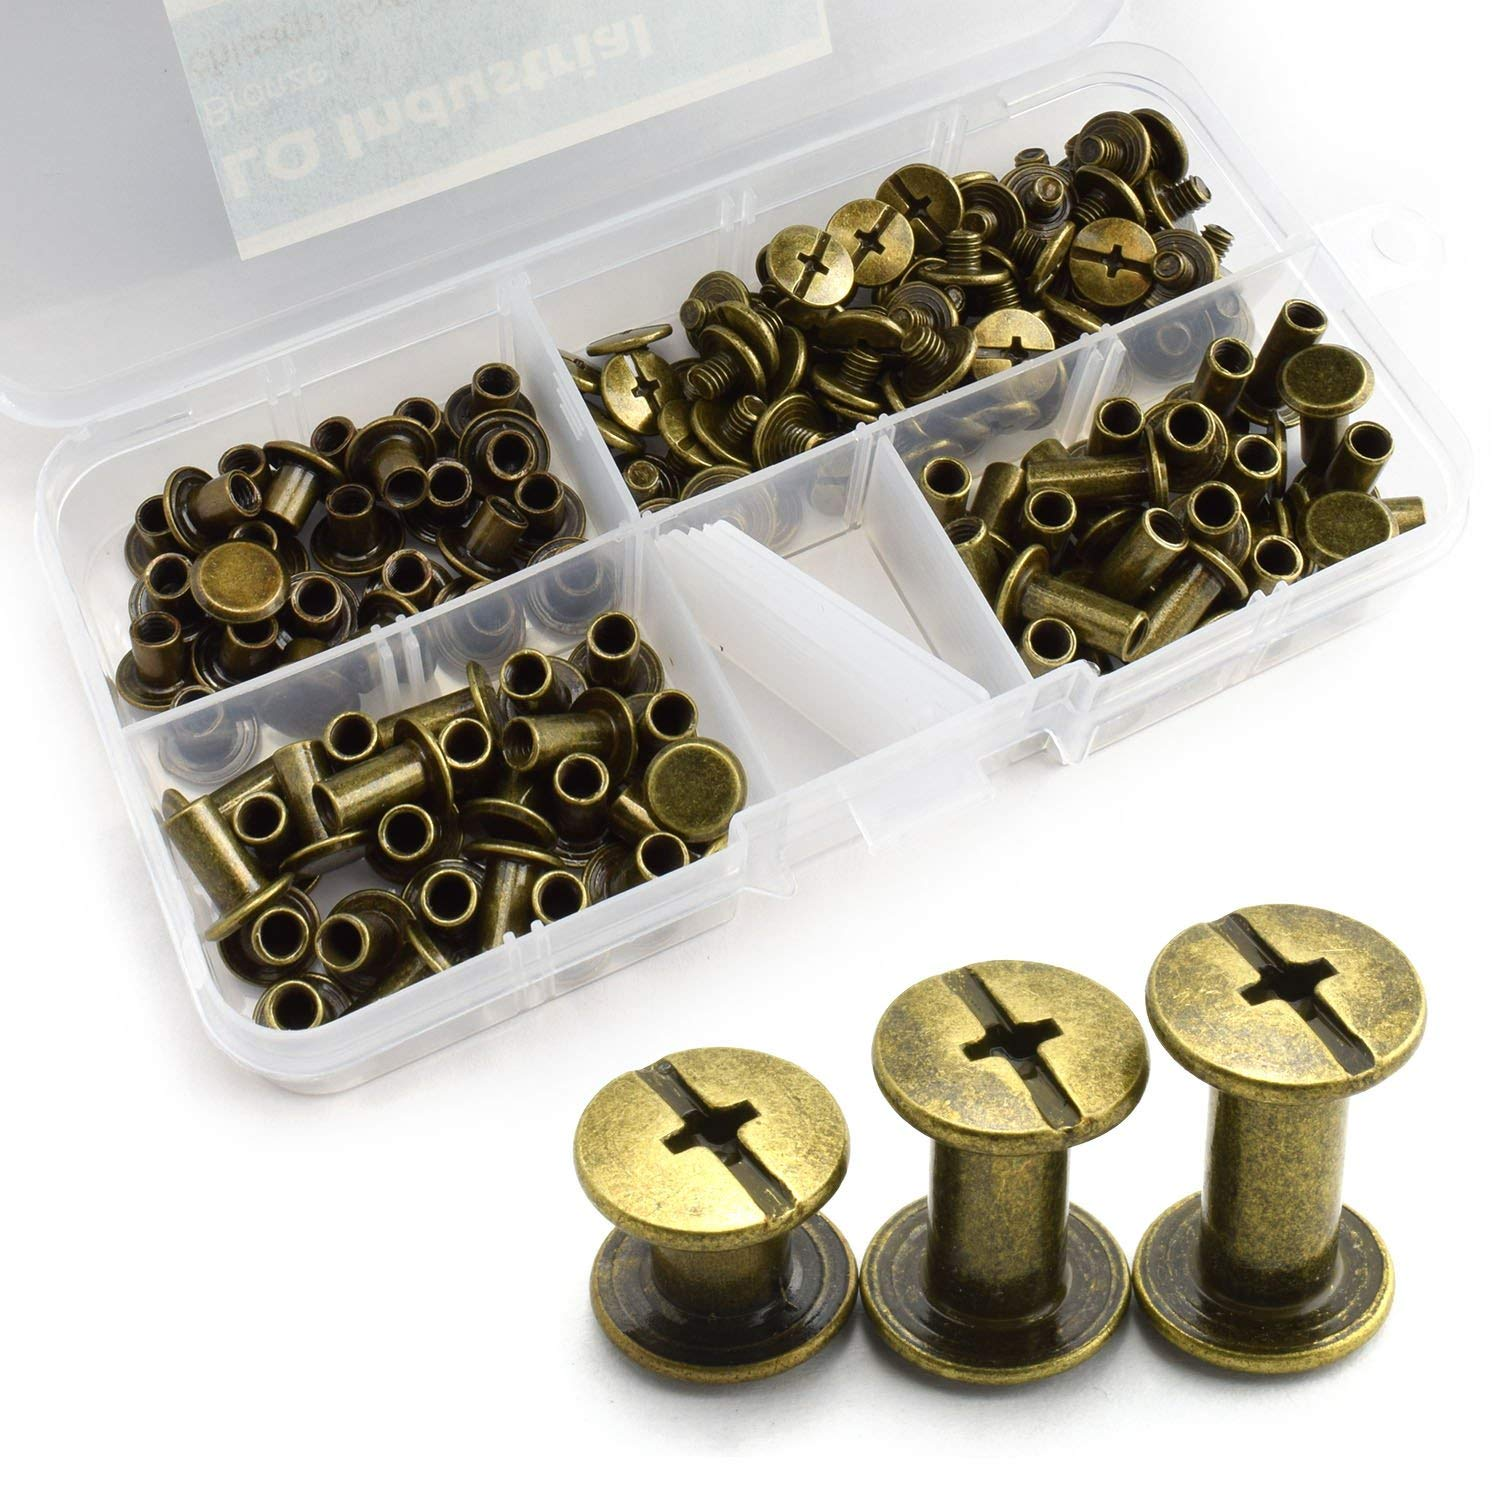 LQ Industrial 75 Sets Bronze M5 Chicago Screw Assorted Kit Slotted Phillip Head Binding Screws Rivet Assembly Bolt Nail Rivet For Book Binding DIY Leather Craft M5x6 M5x10 M5x12